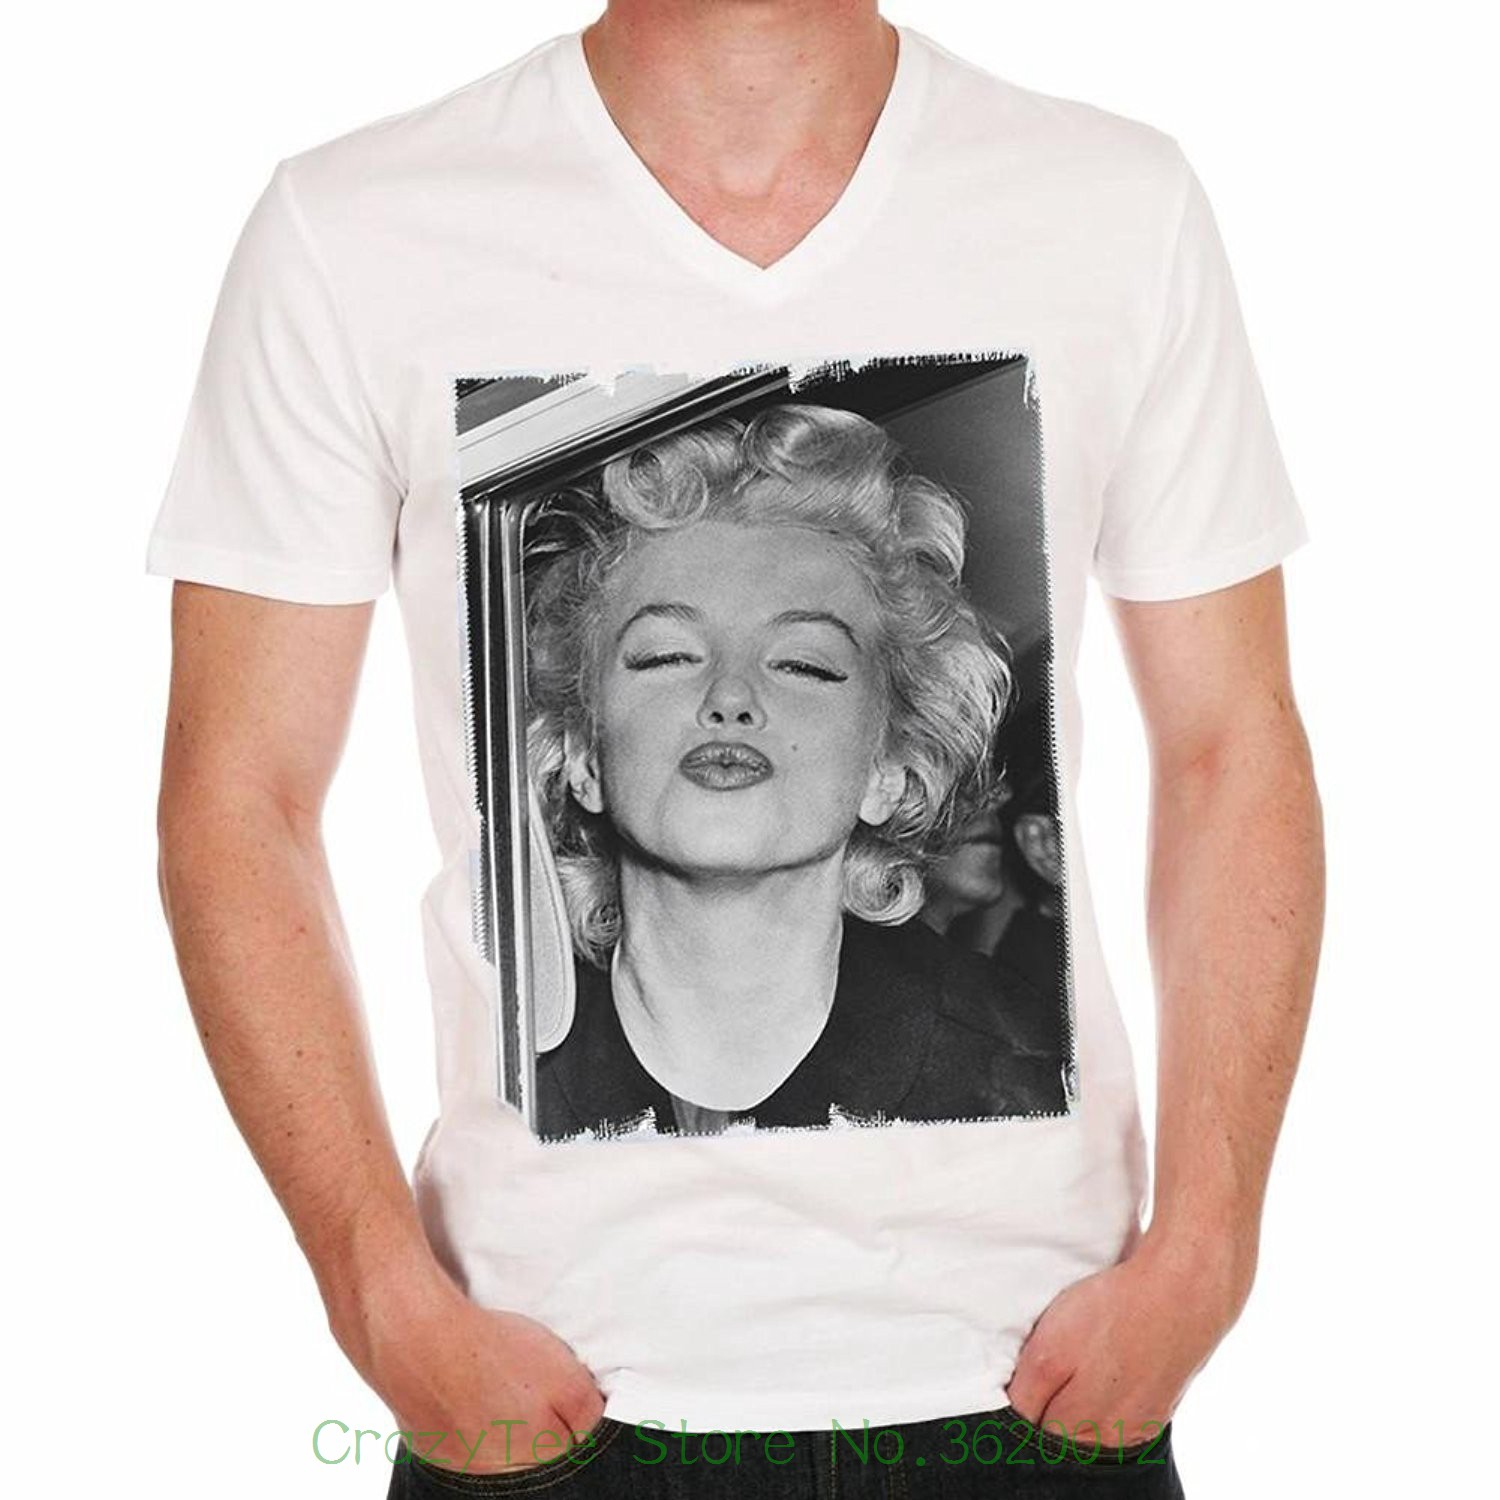 aaf161fe76b8 Buy marilyn monroe shirts men and get free shipping on AliExpress.com